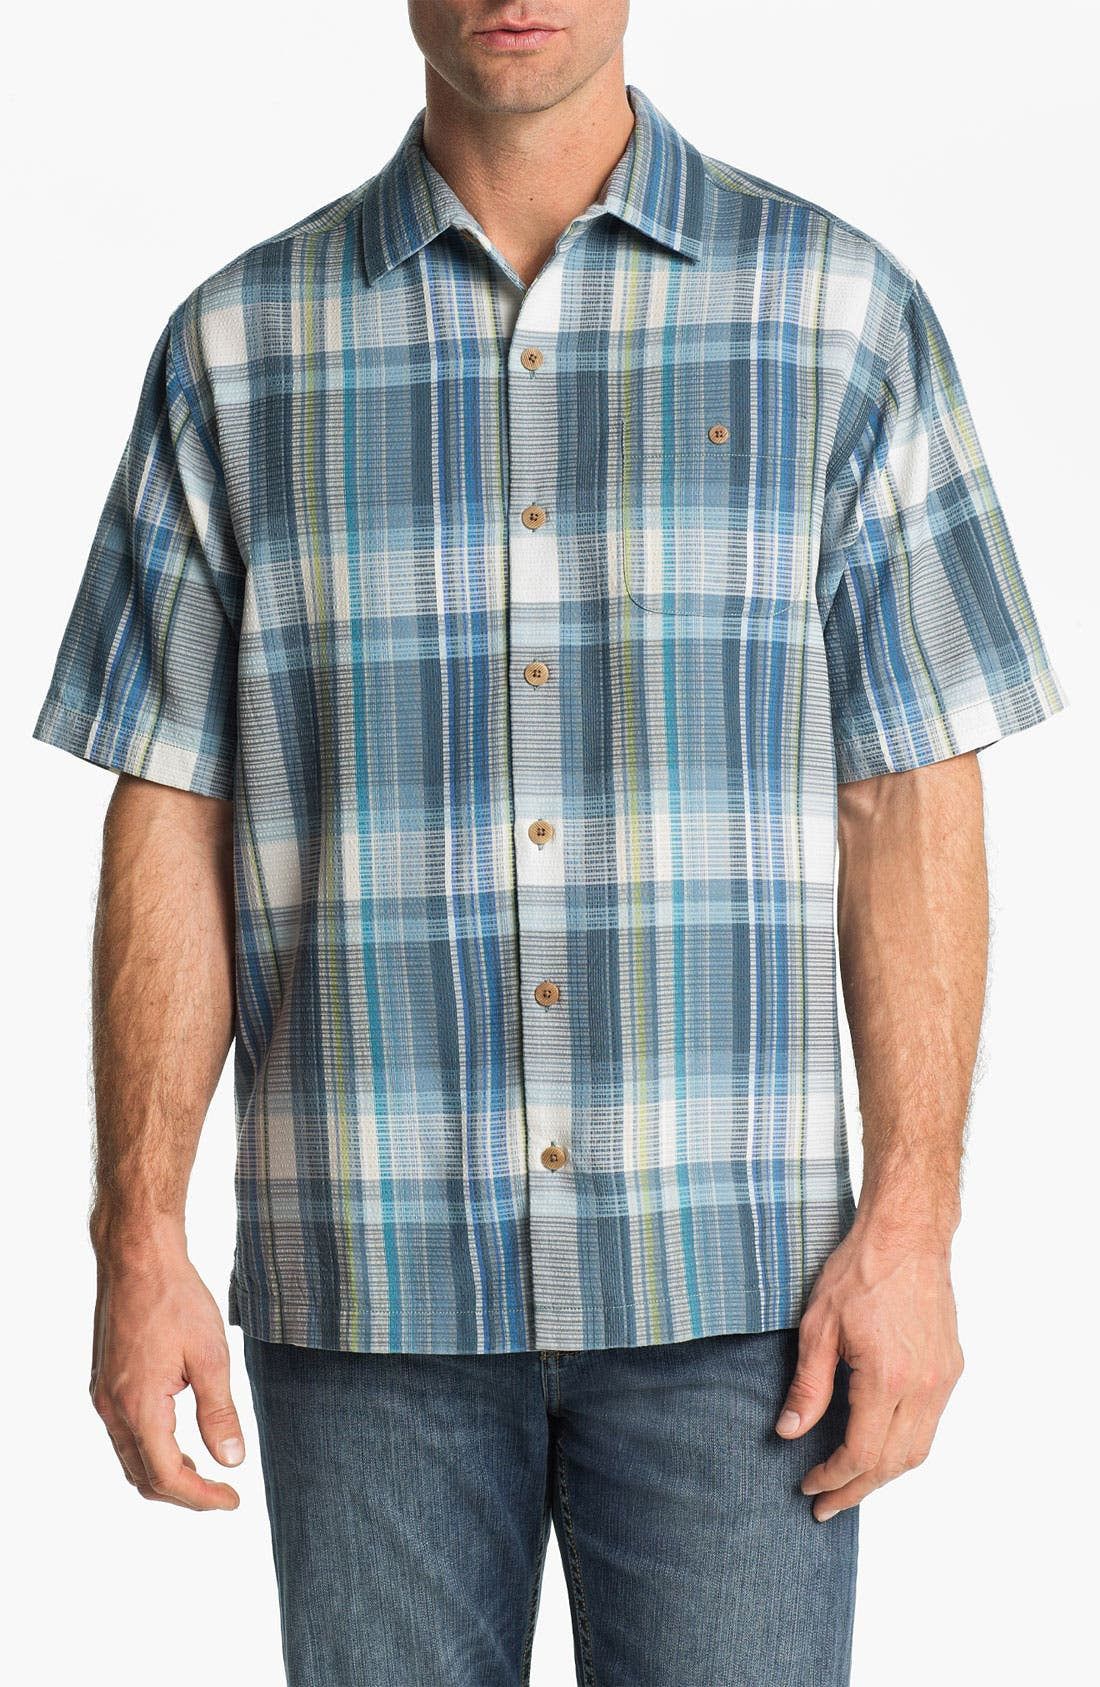 Alternate Image 1 Selected - Tommy Bahama 'Sand Plaid' Silk Campshirt